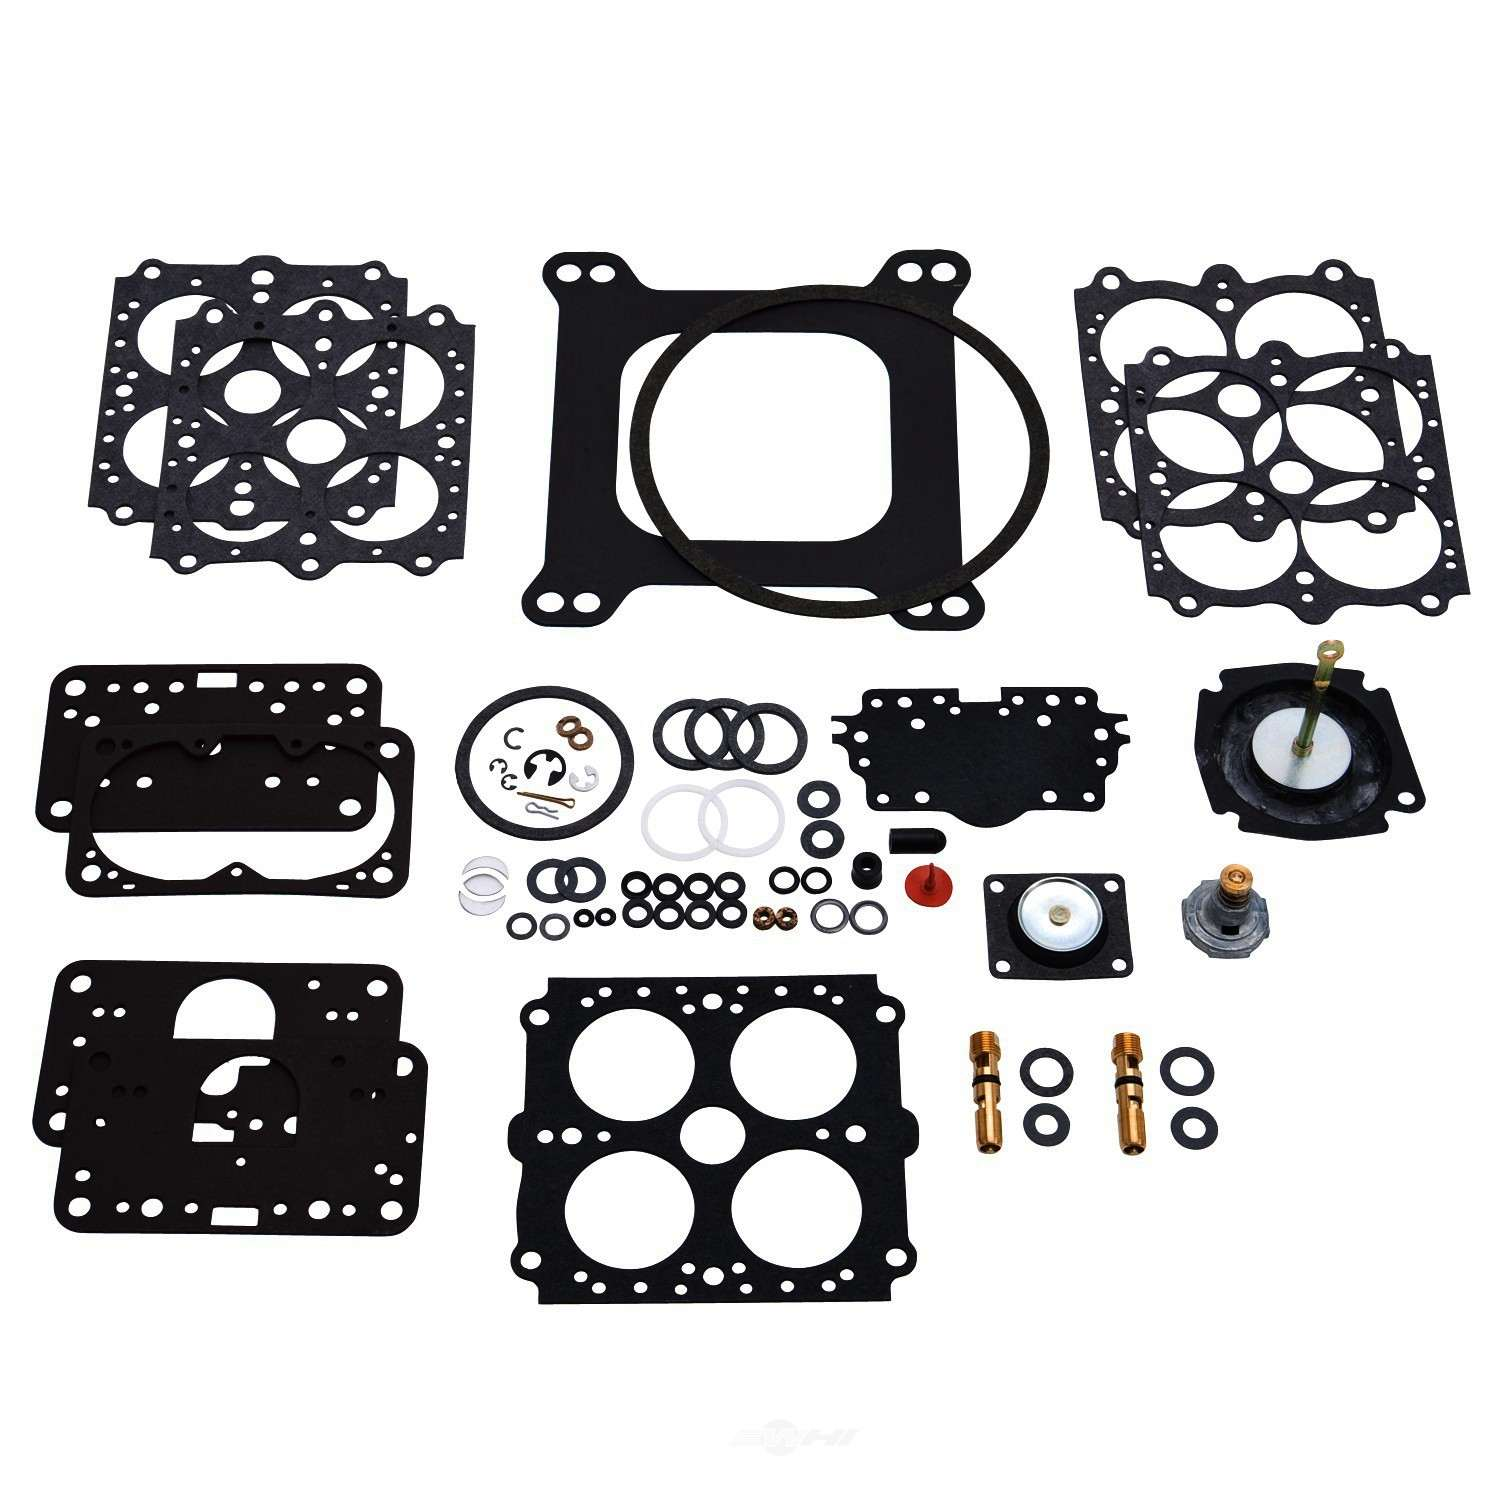 EDELBROCK - Holley/Demon/Quick Fuel Rebuild Kit - EDB 12750